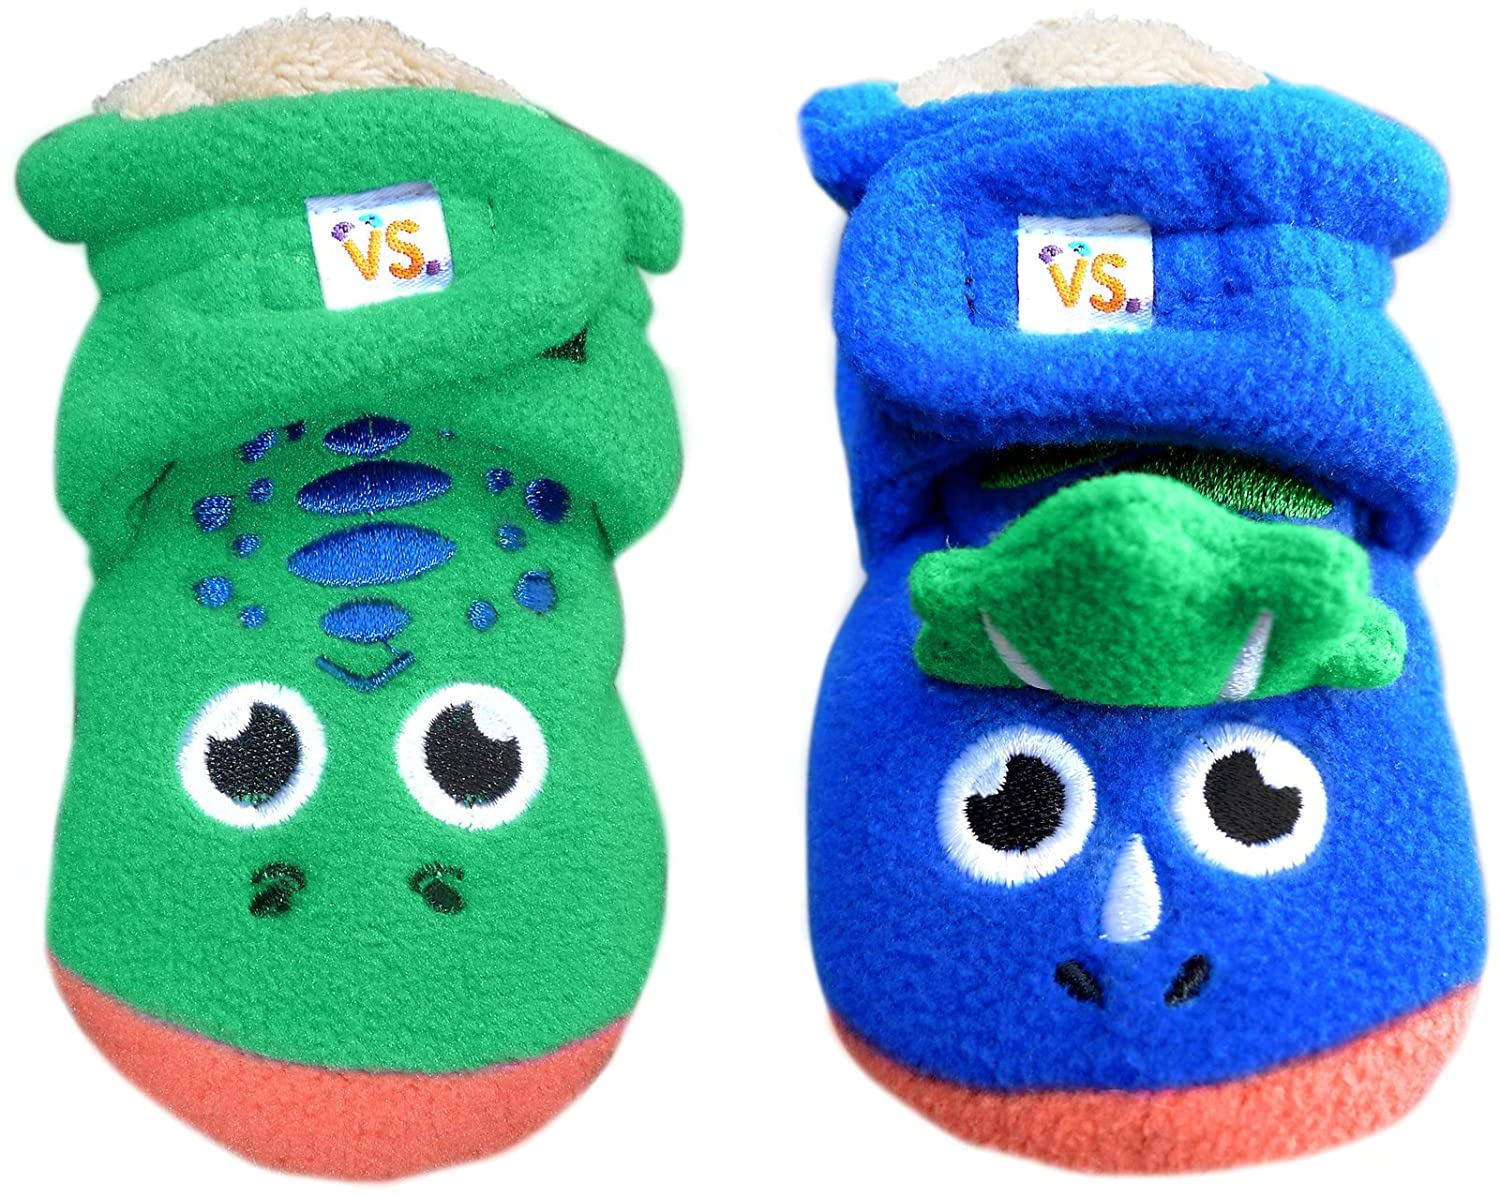 Multicolor-6-12M Booties: T-Rex vs Triceratops Vs Stuff Vs